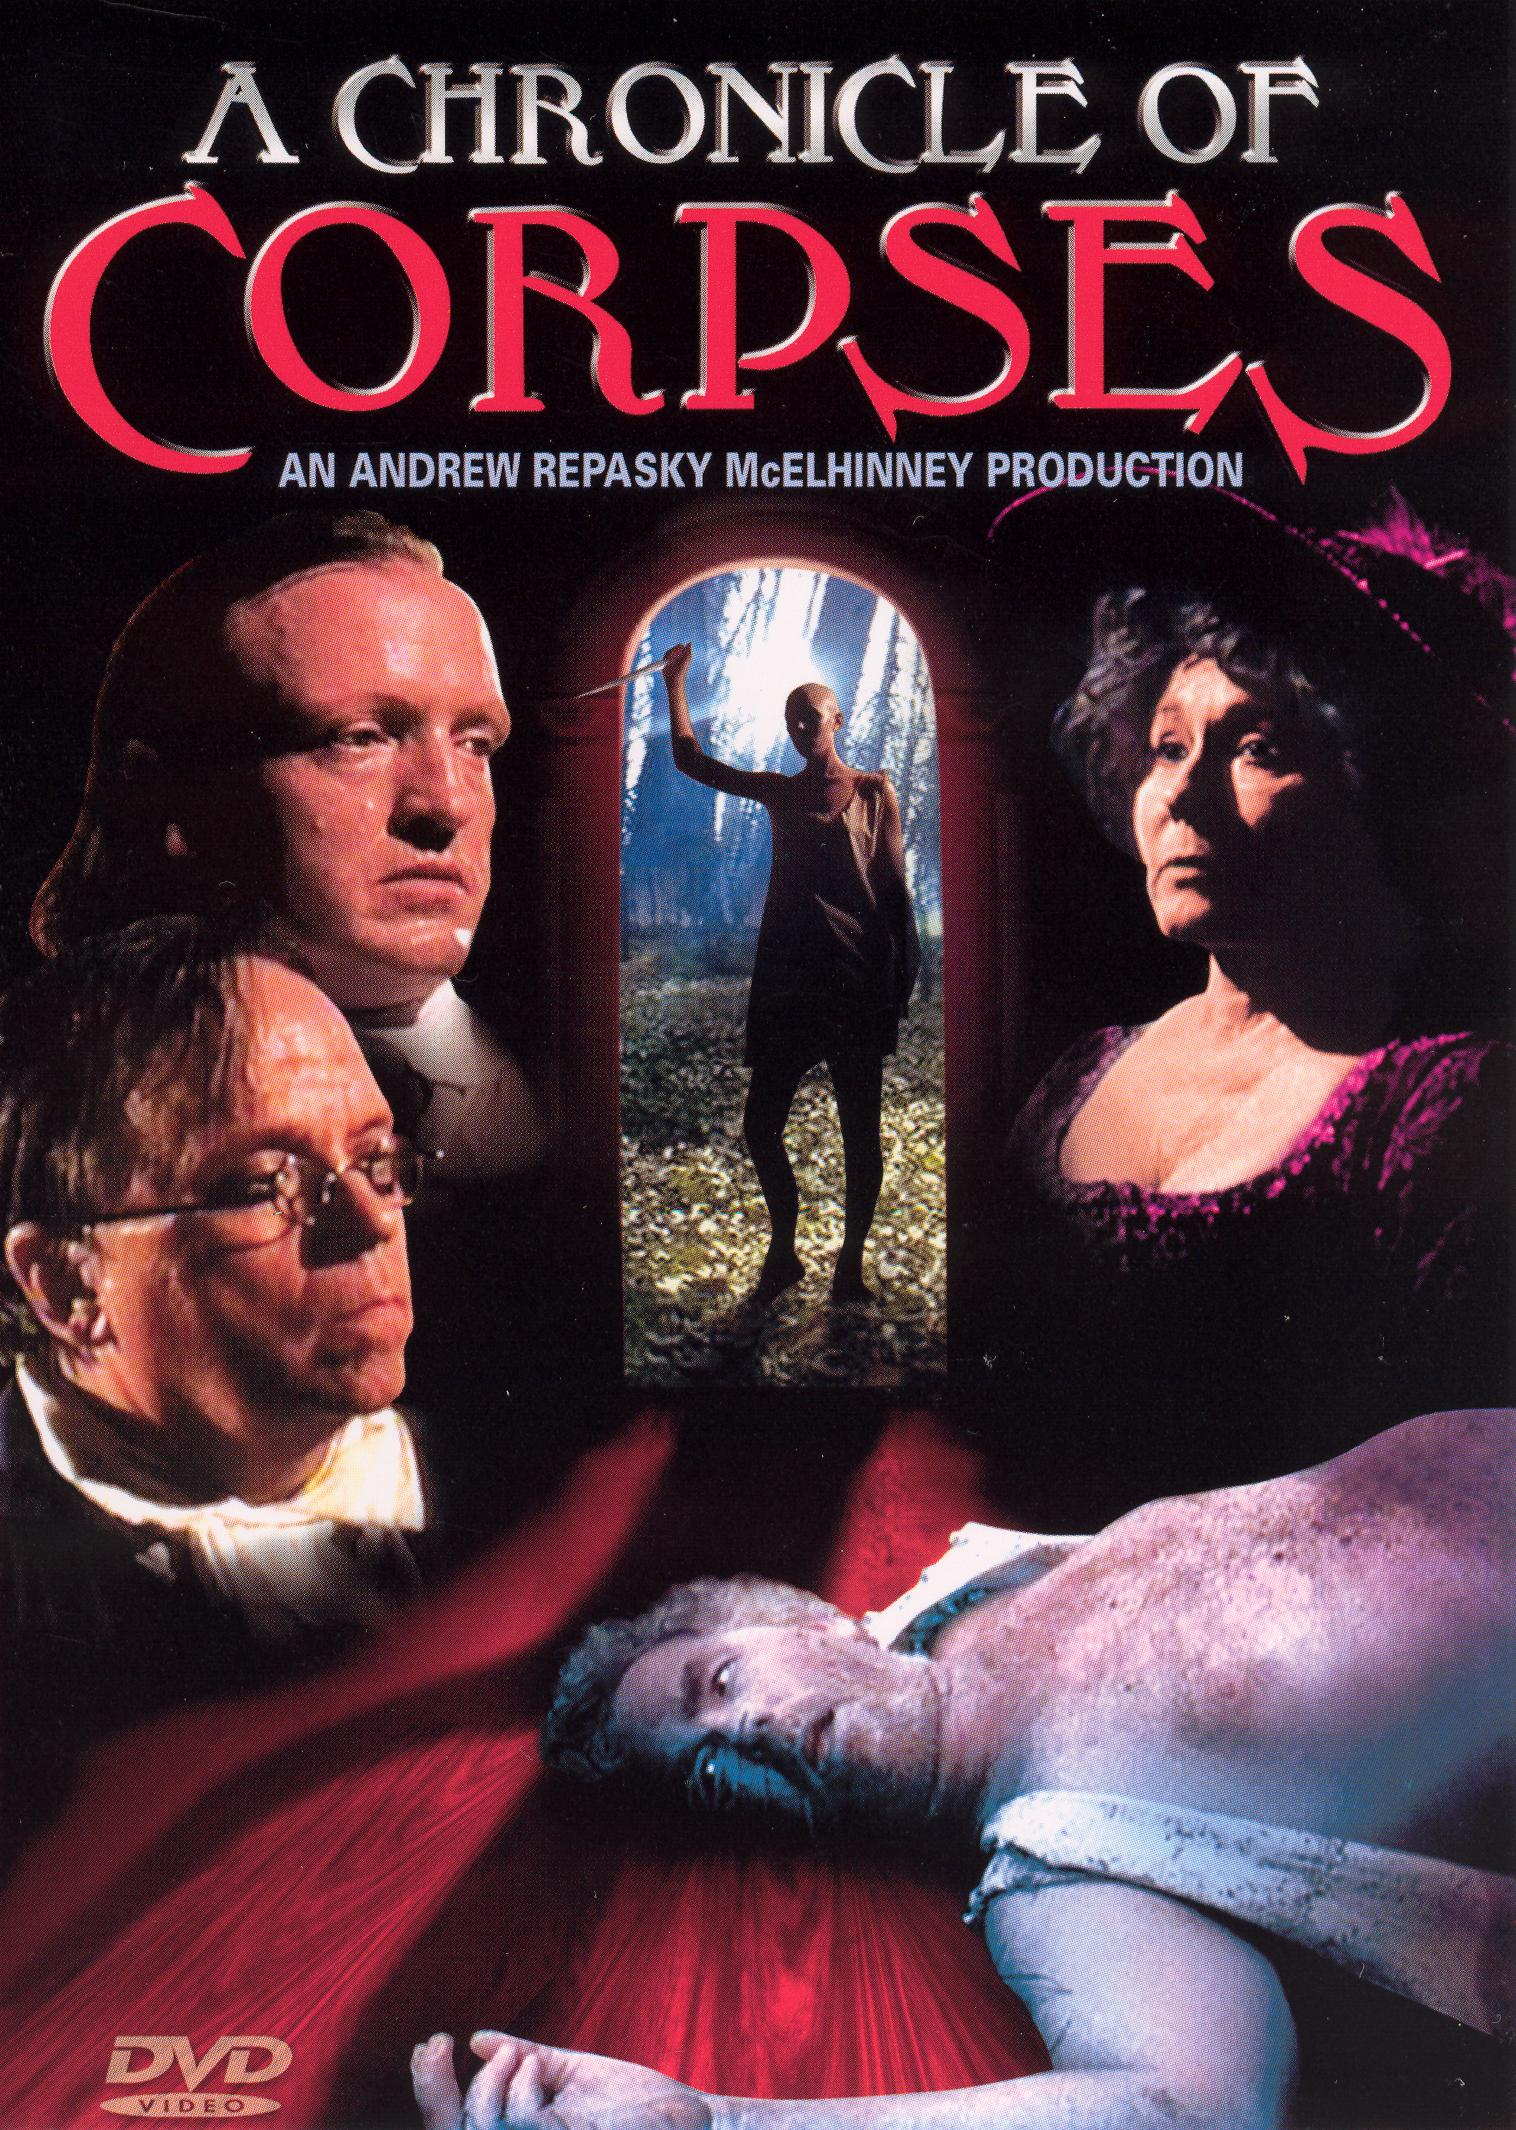 A Chronicle of Corpses (2002) - Andrew Repasky McElhinney ...